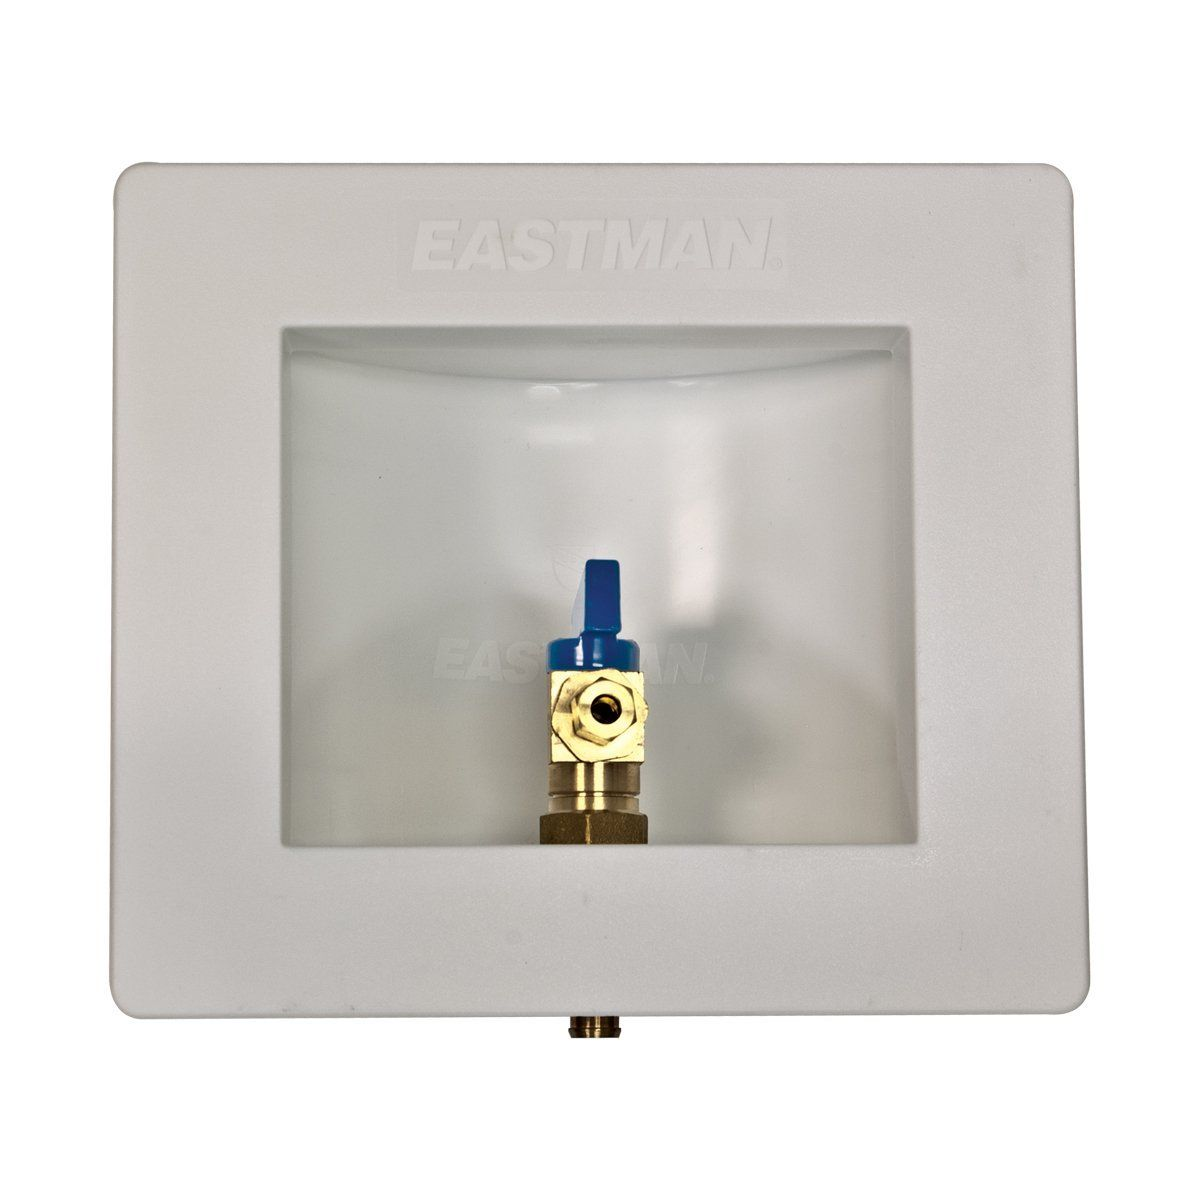 Eastman 60233 pex ice maker box 12inch this is an